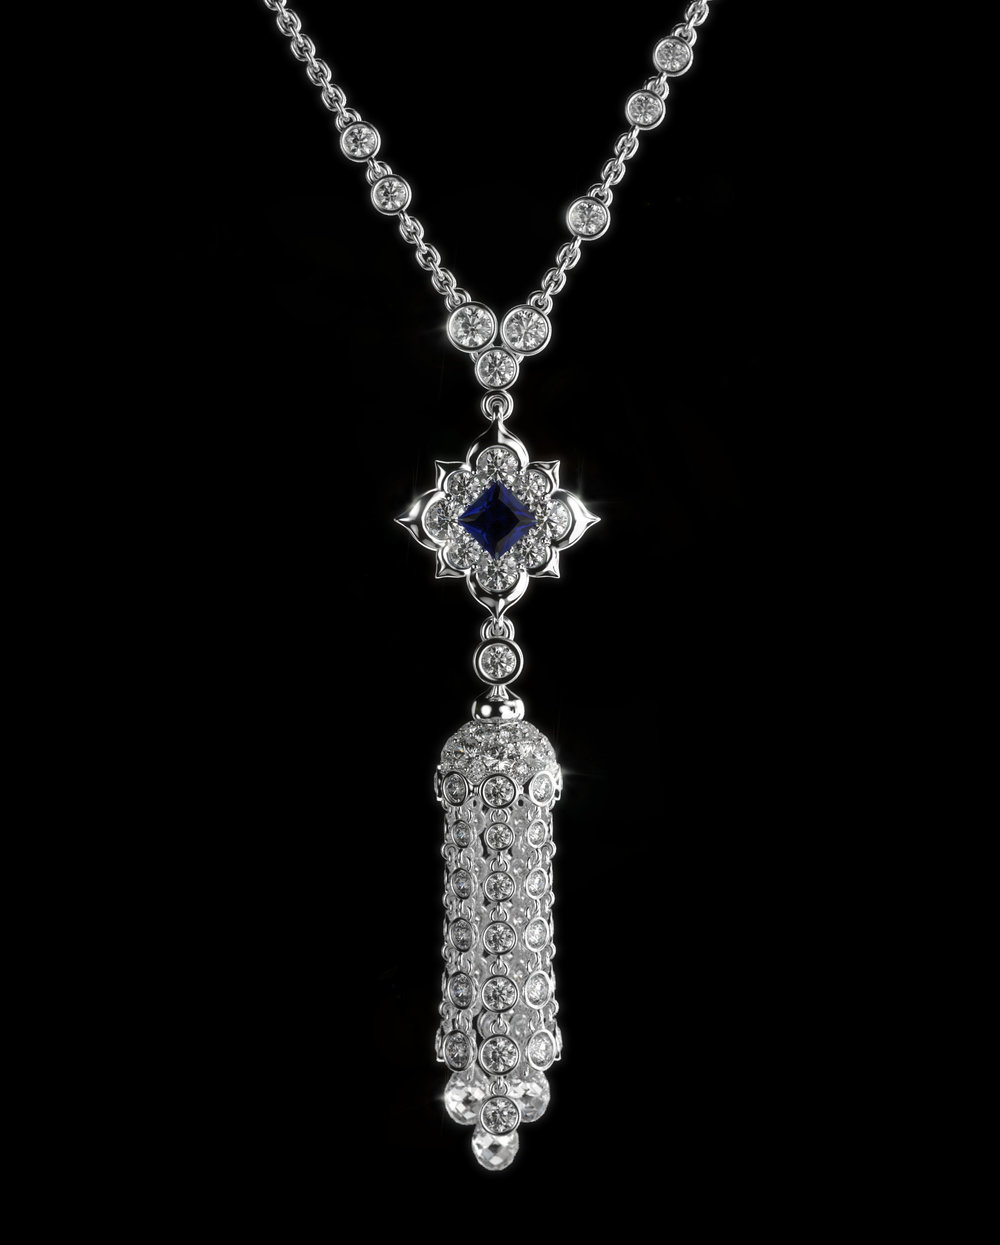 Naghsh-e jahan - An exquisite high jewelry necklace